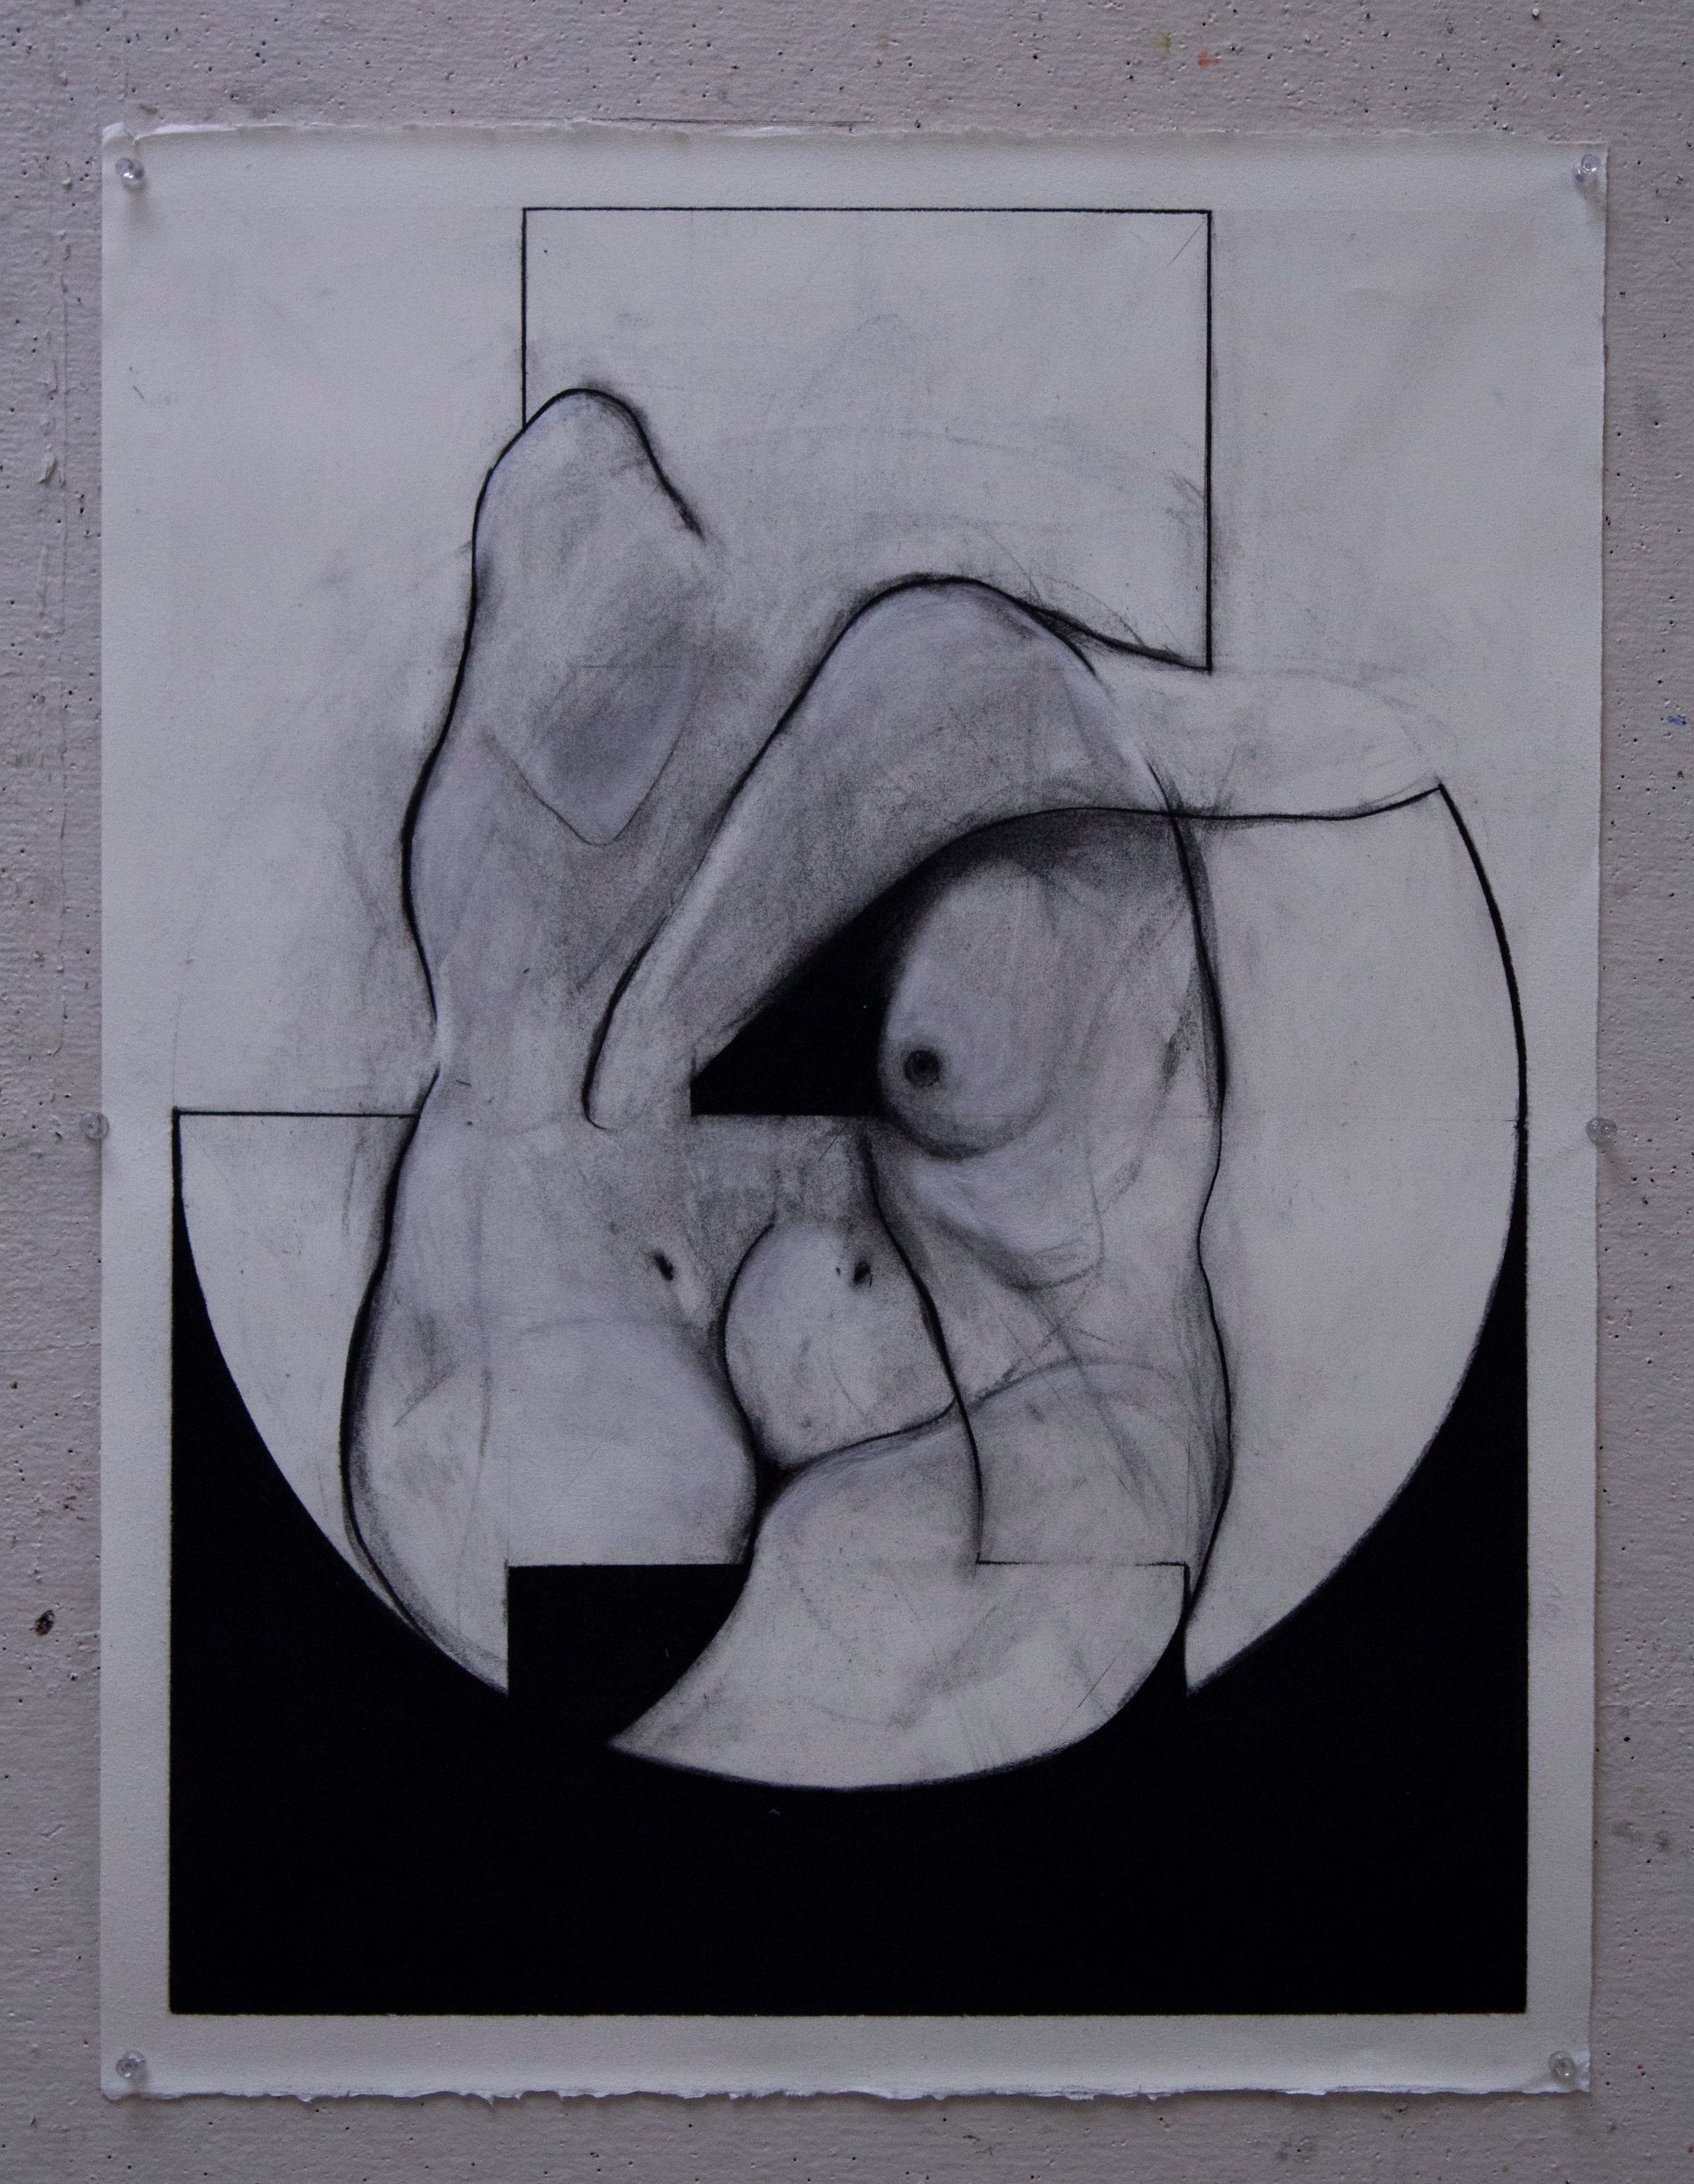 Overlapping Figures 1